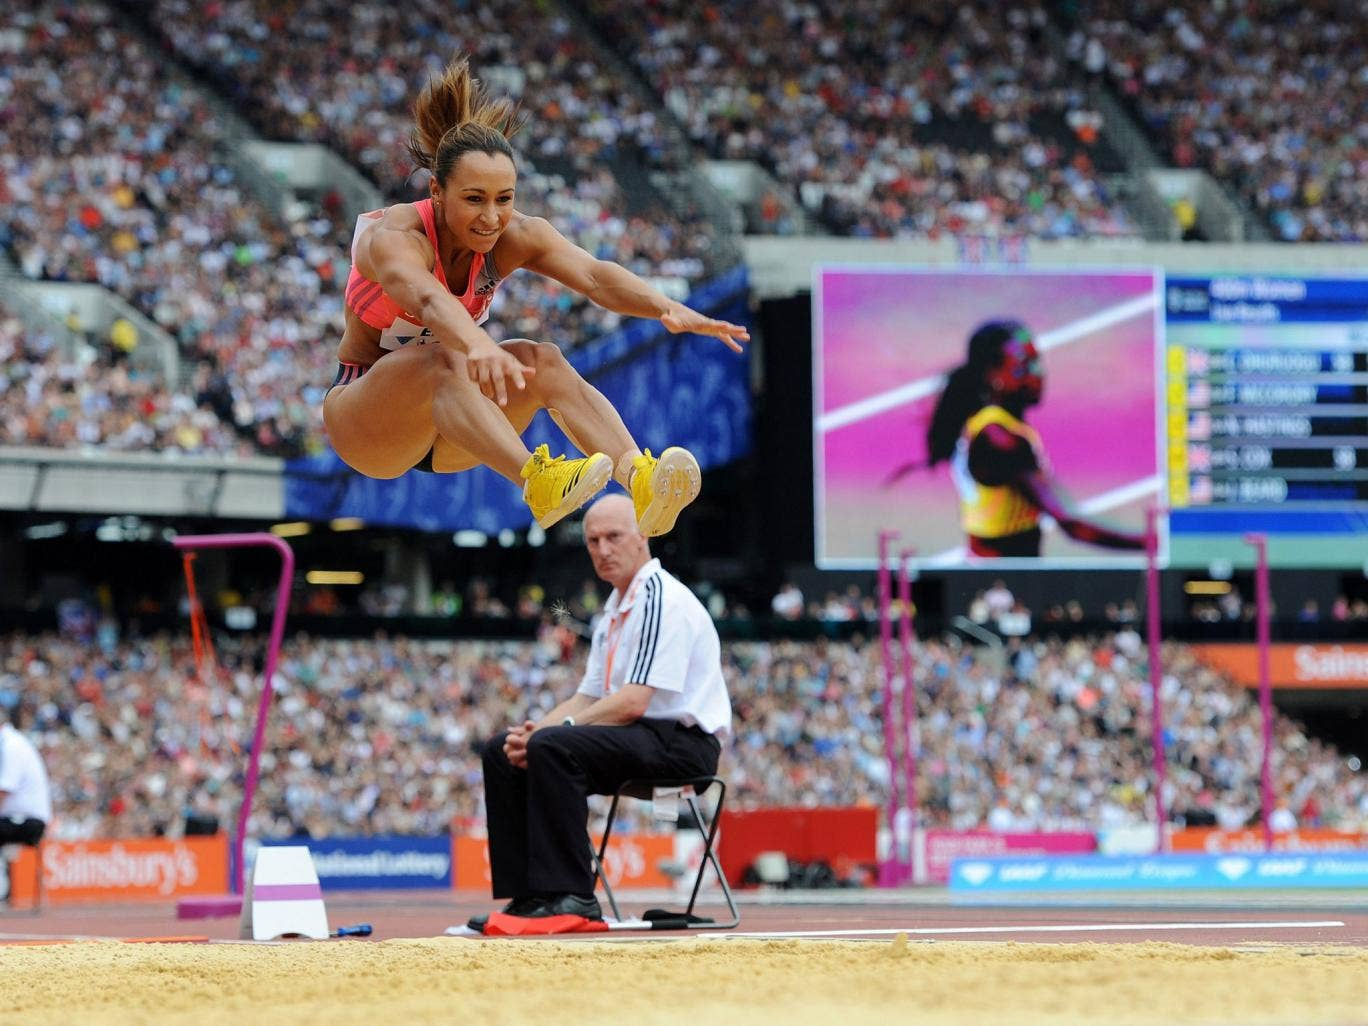 Leap of faith: Jessica Ennis-Hill continues her comeback from injury at the Anniversary Games in London